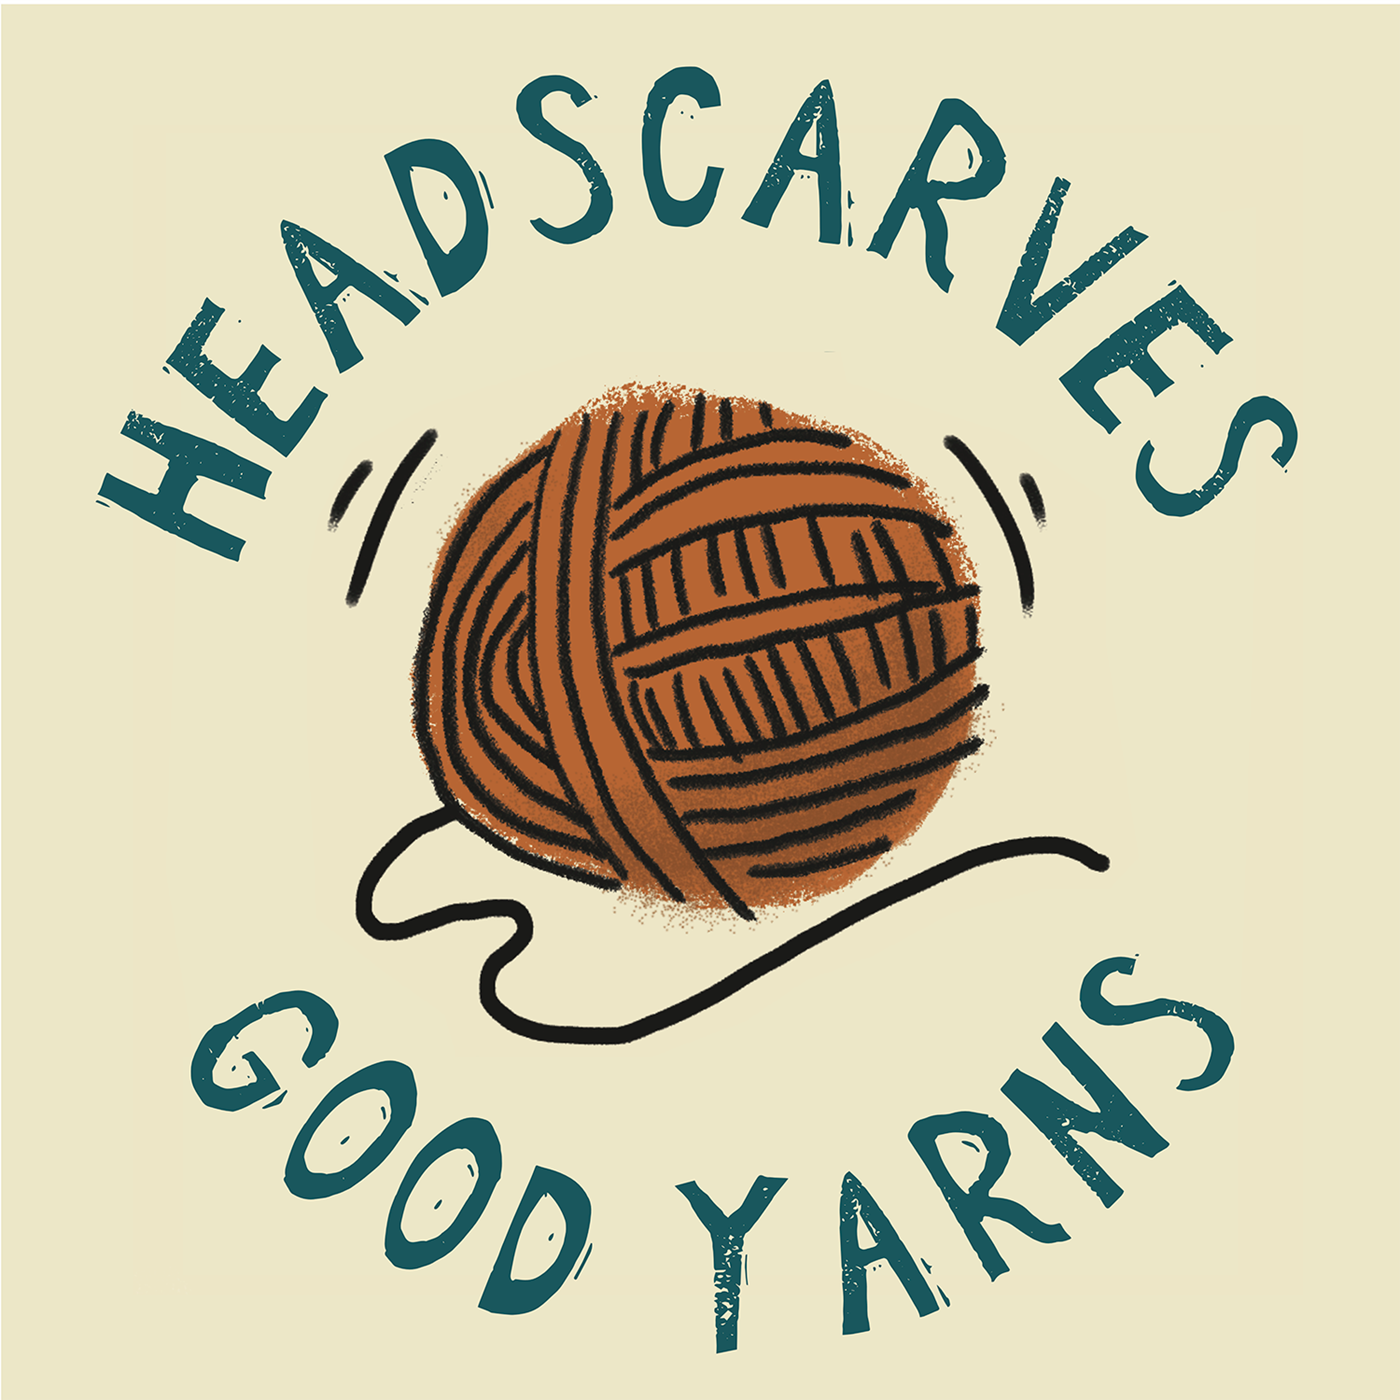 Headscarves and Good Yarns